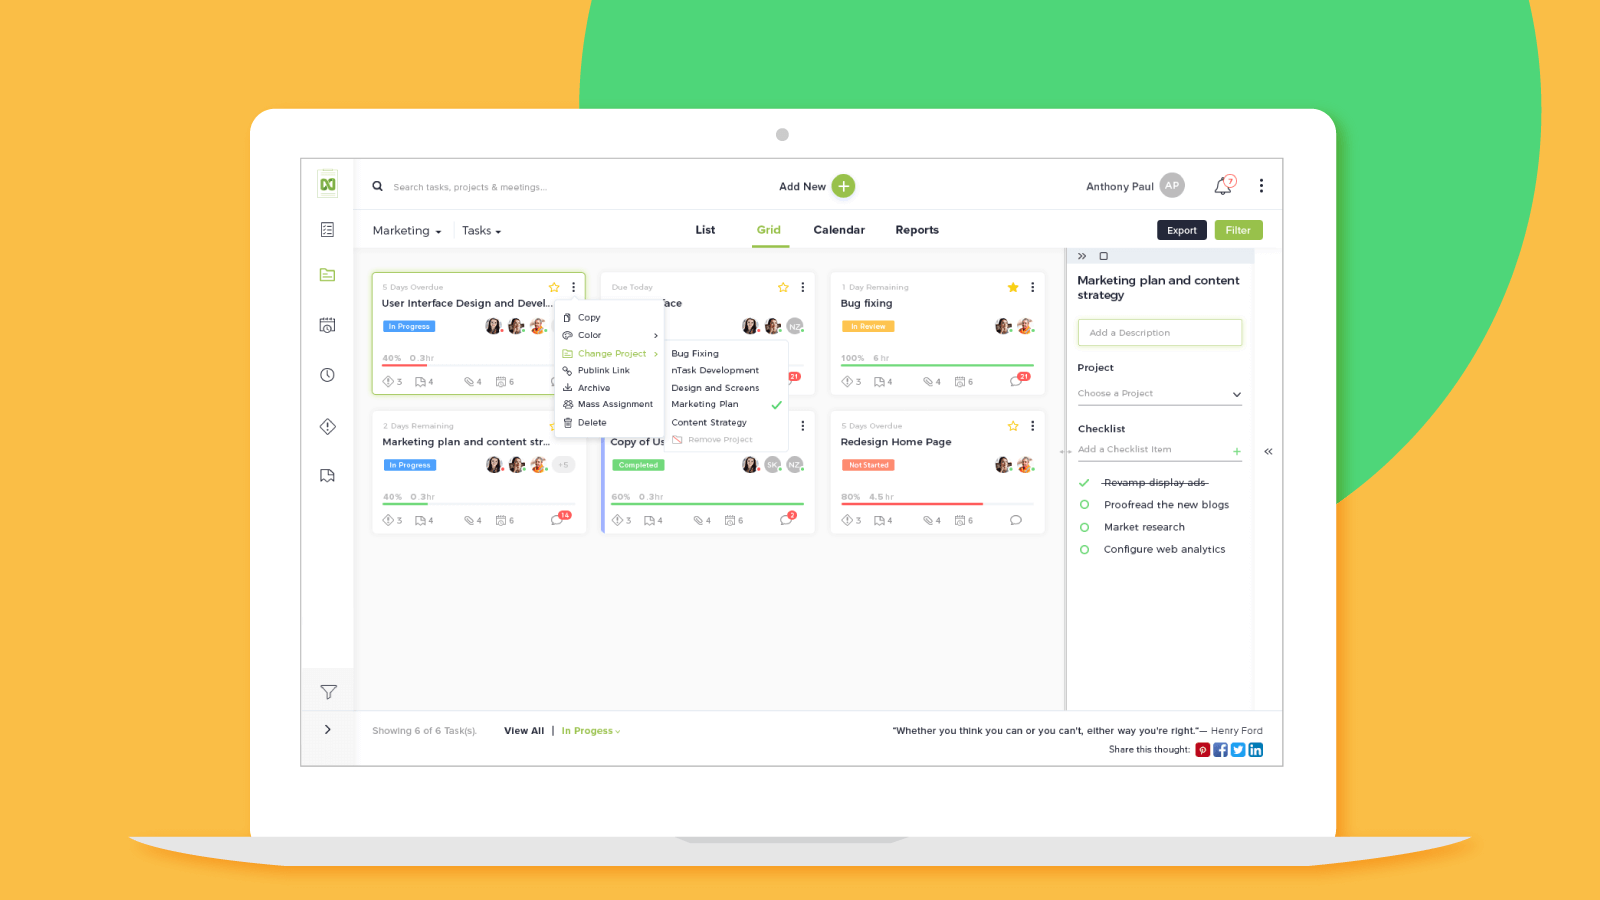 free evernote alternatives, top evernote alternatives, evernote replacements, alternatives to evernote, Productivity Land, best scrum tools, best scrum tools 2019, top scrum tools, top scrum tools 2019